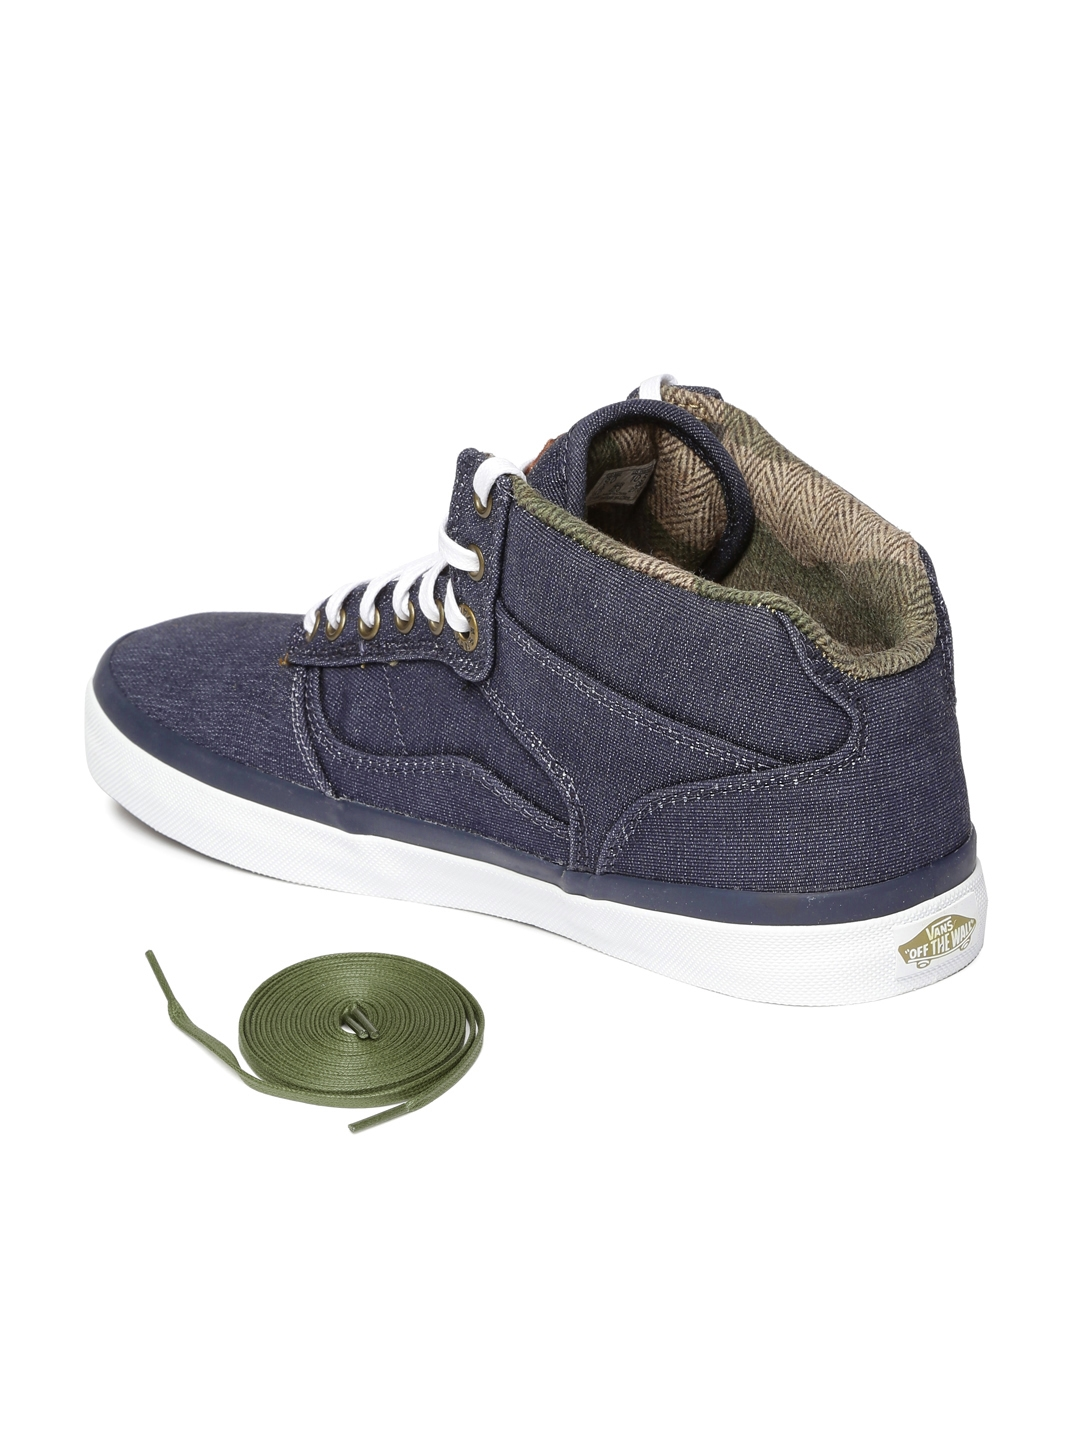 08472a8de6be0 Buy Vans Unisex Blue Solid Bedford Mid Top Sneakers - Casual Shoes ...